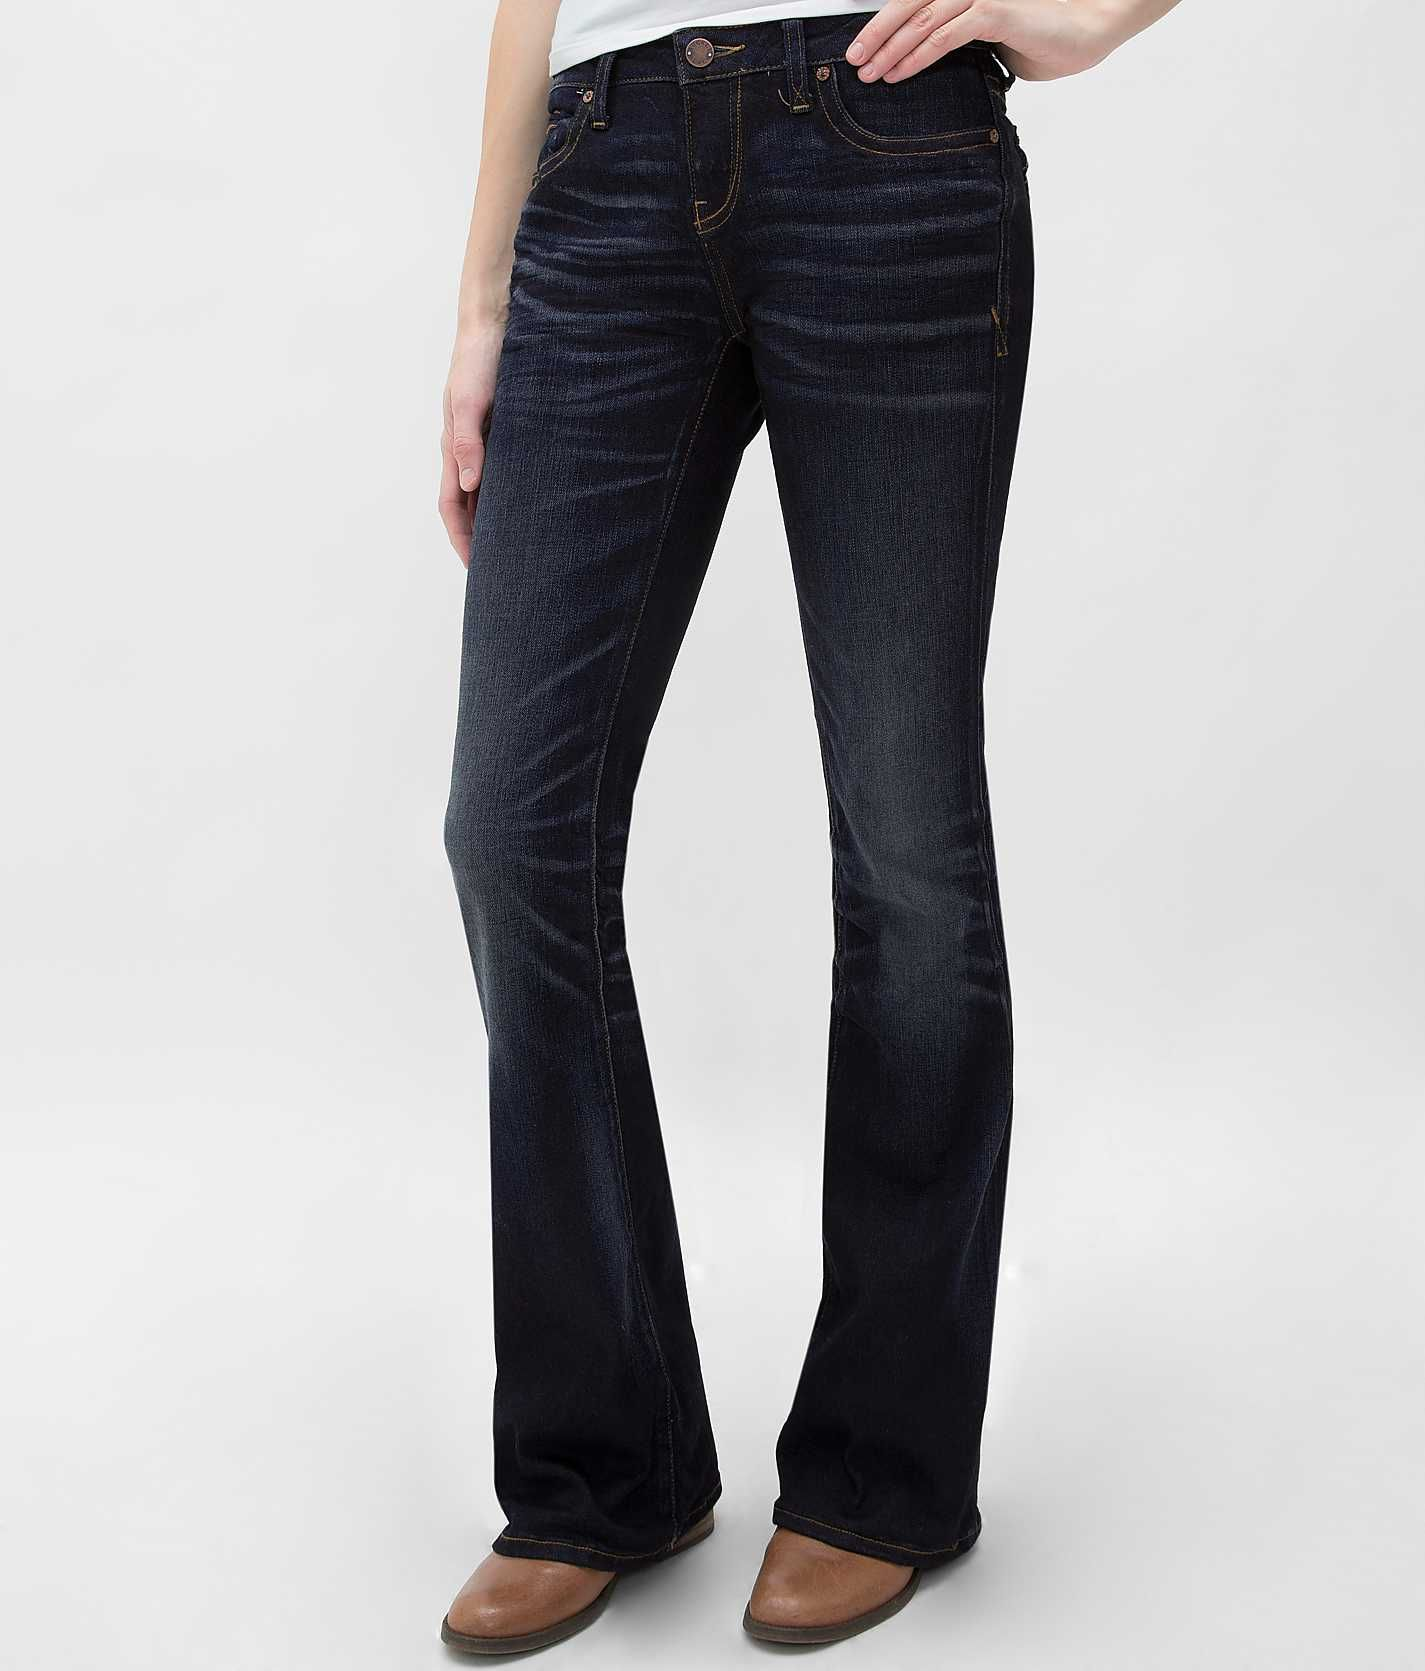 arriving lower price with super quality Buckle Black Fit No. 306 Mid-Rise Flare Jean - Women's Jeans ...